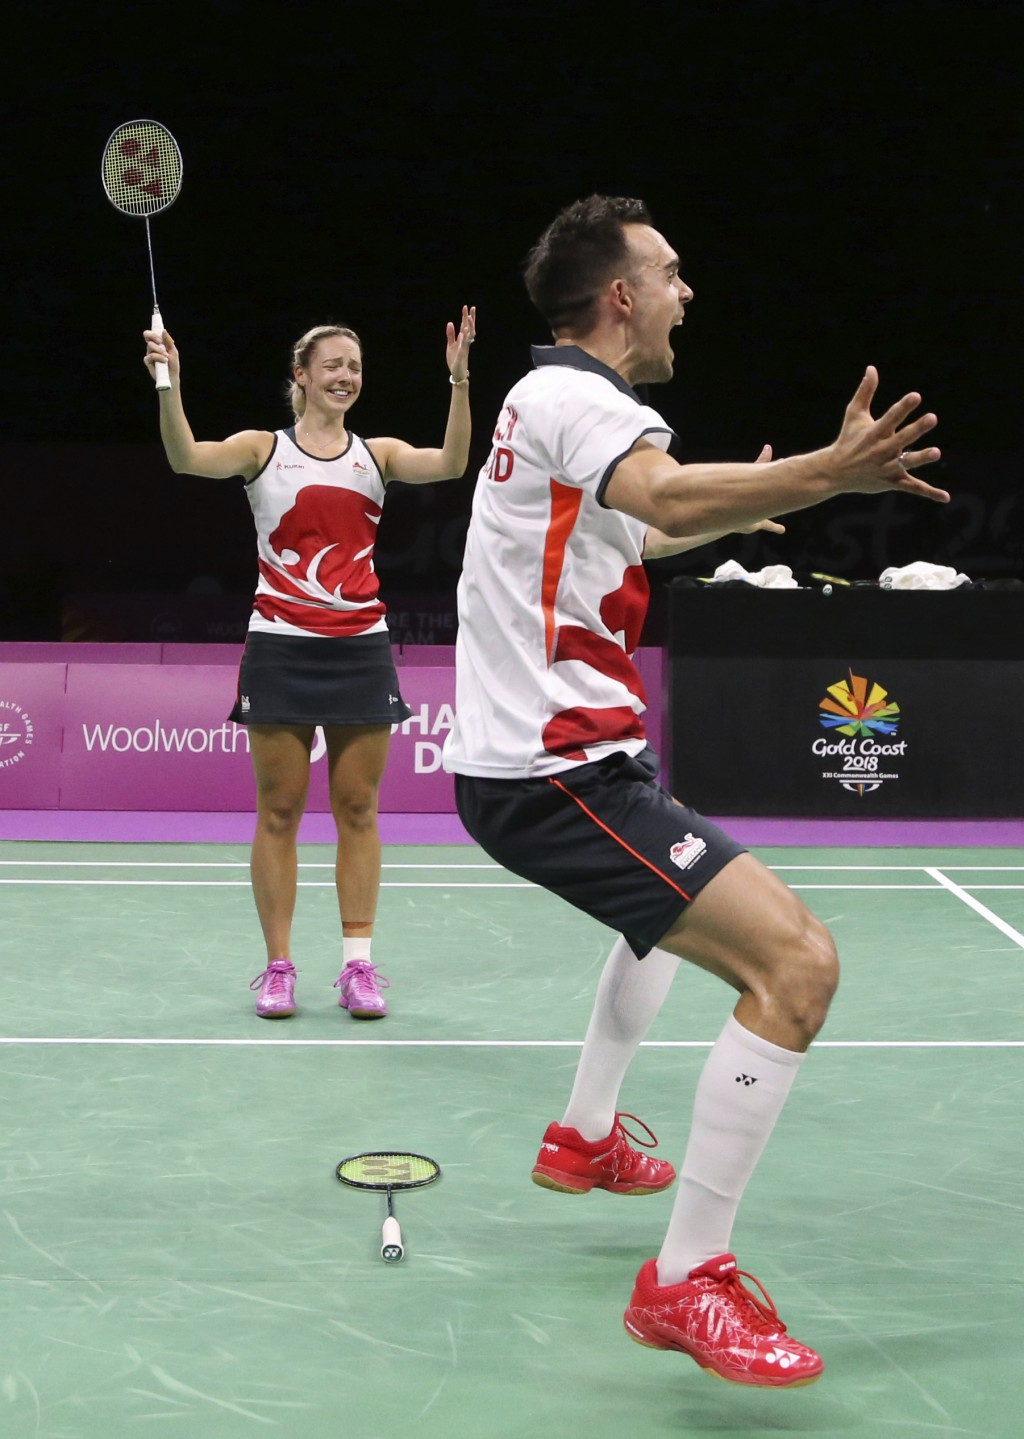 CORRECT NAMES OF PLAYERS - England's Chris Adcock, right, and Gabrielle Adcock celebrate after defeating their compatriots Marcus Ellis and Lauren Smi